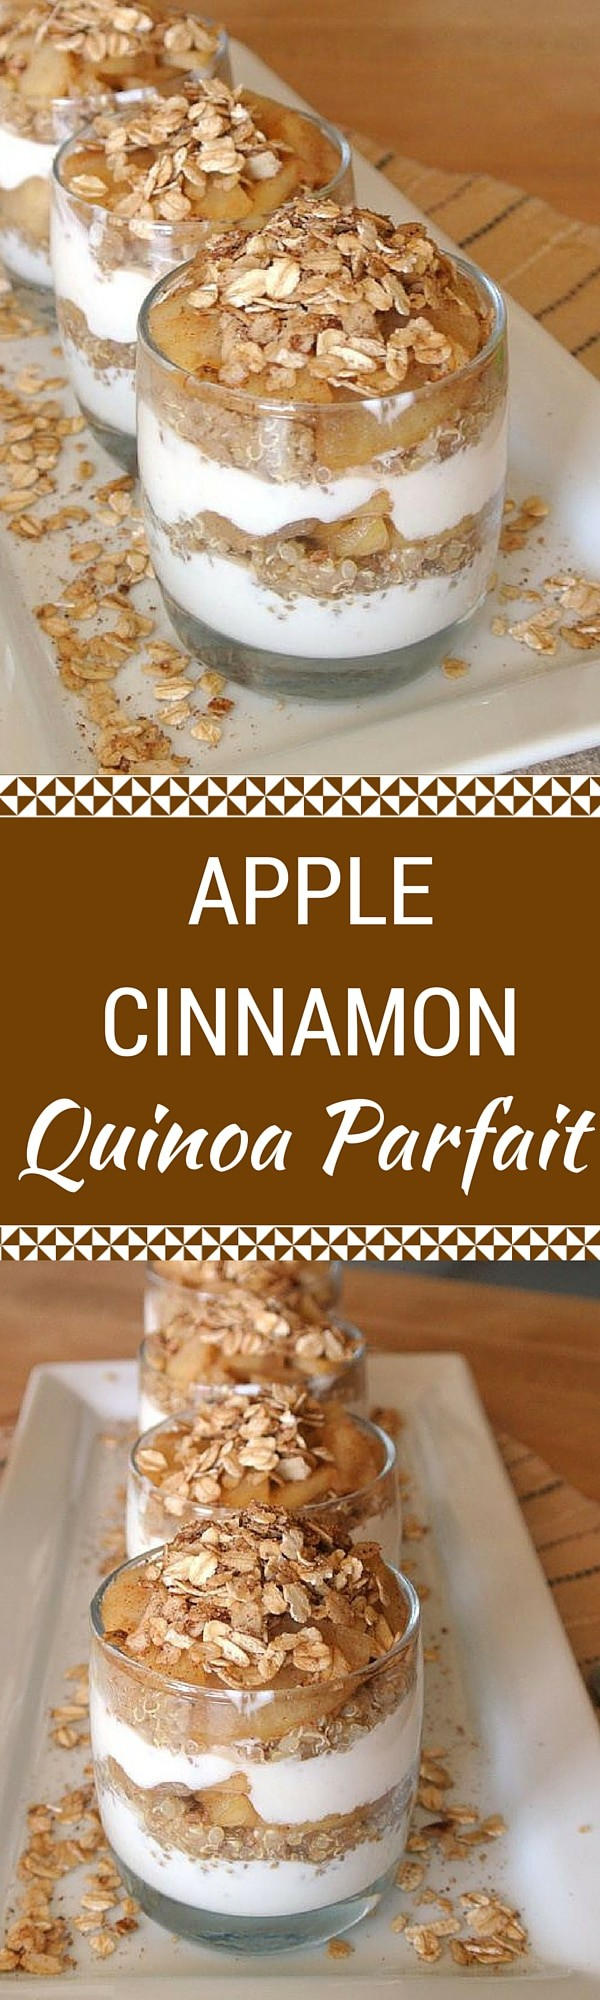 Apple Cinnamon Quinoa Parfait